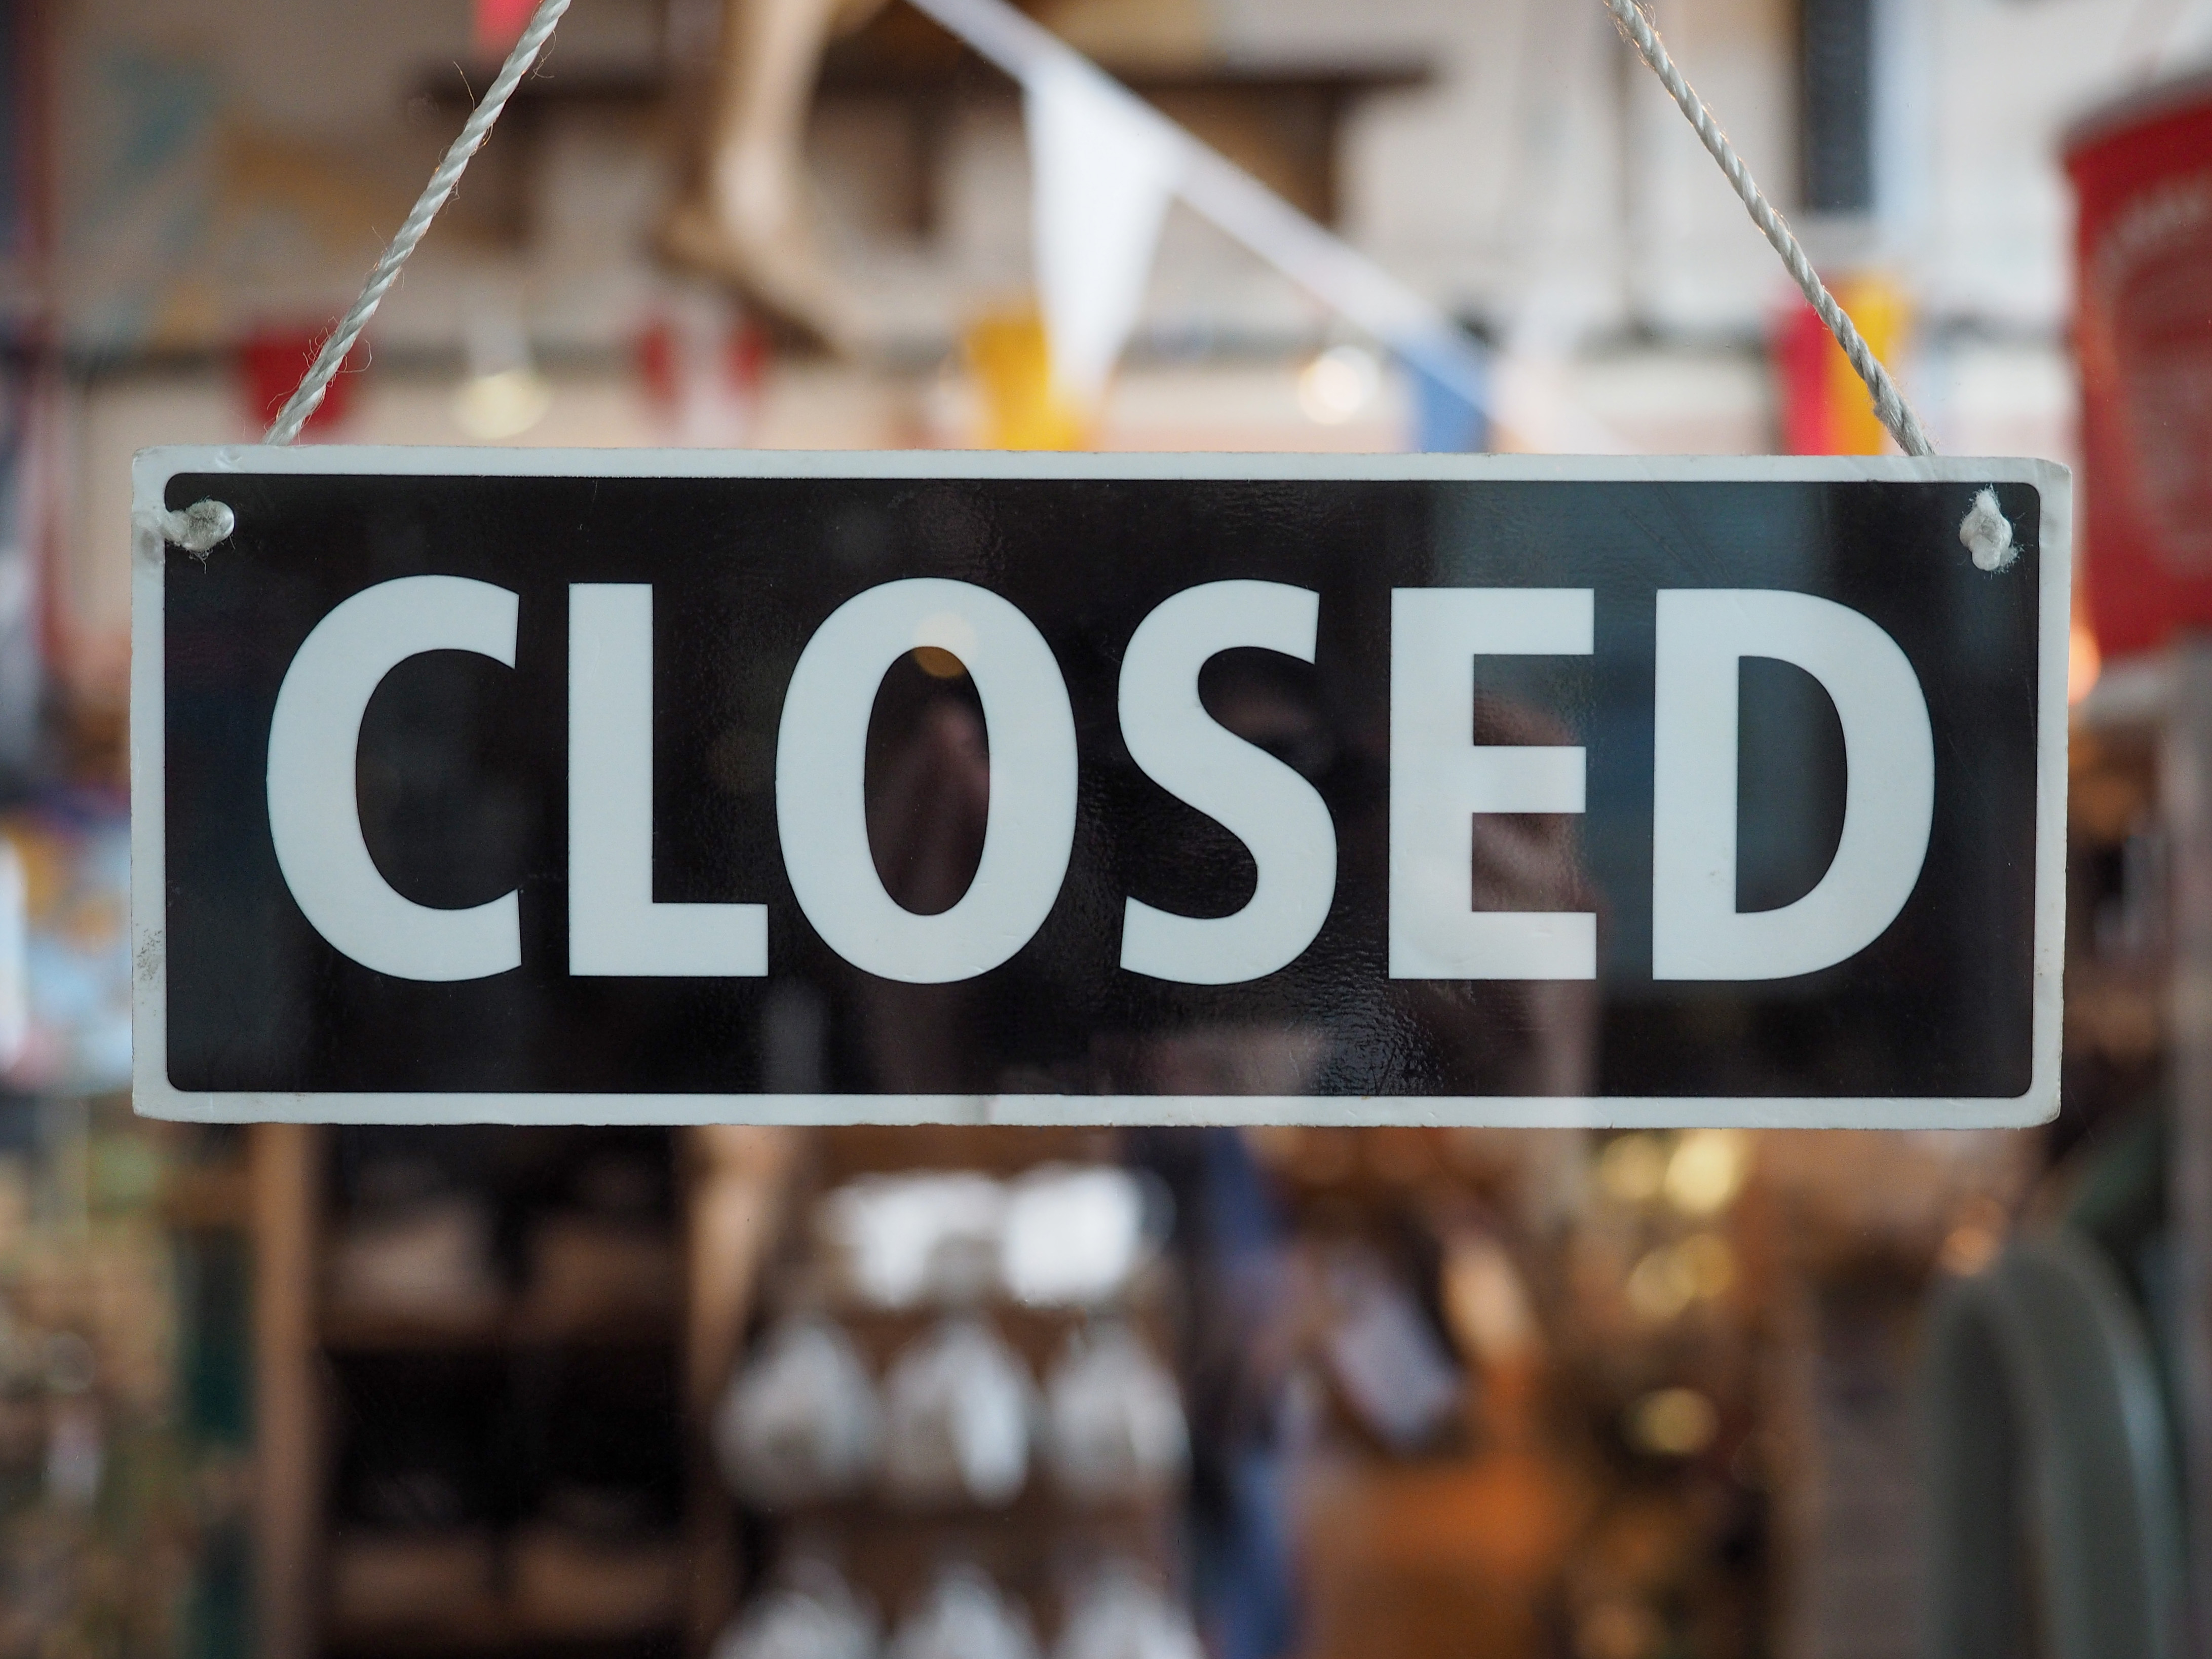 a photo of a closed sign